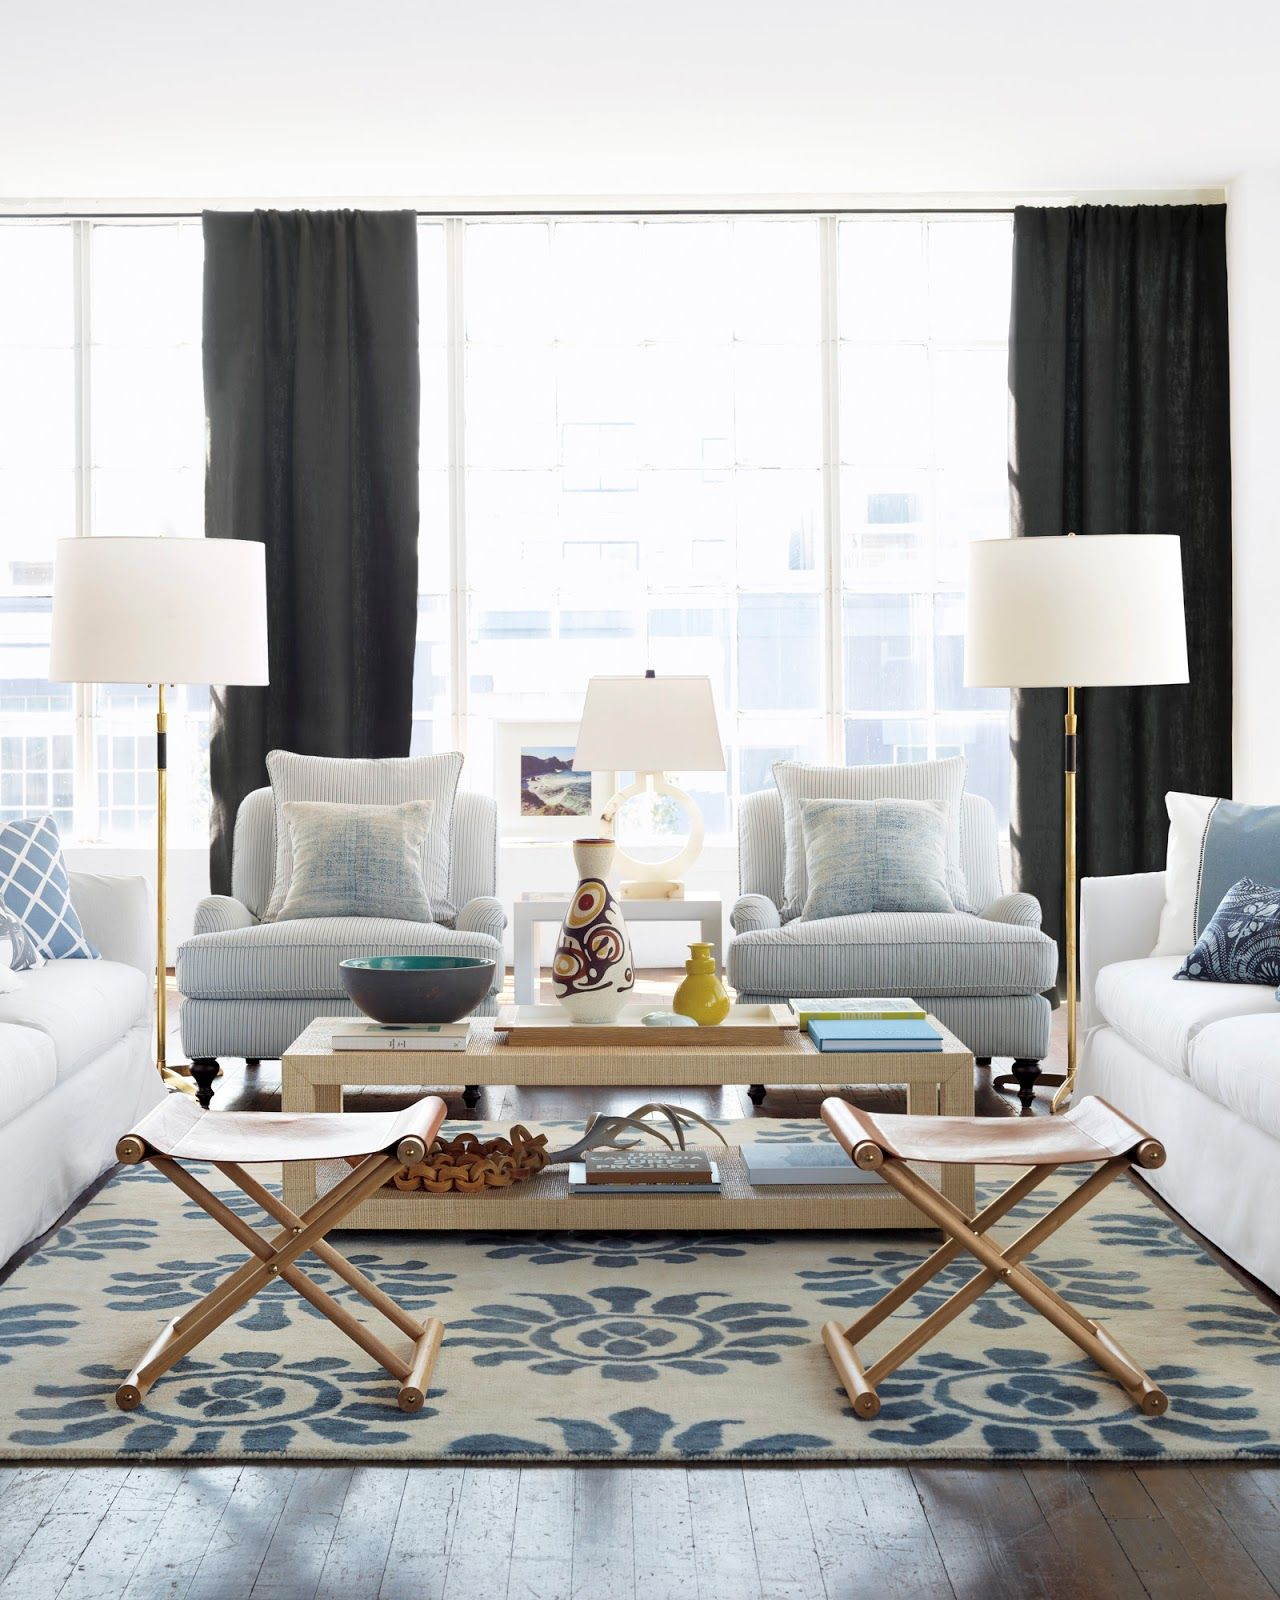 Coastal Style Classic Hamptons Style with Blue Accents